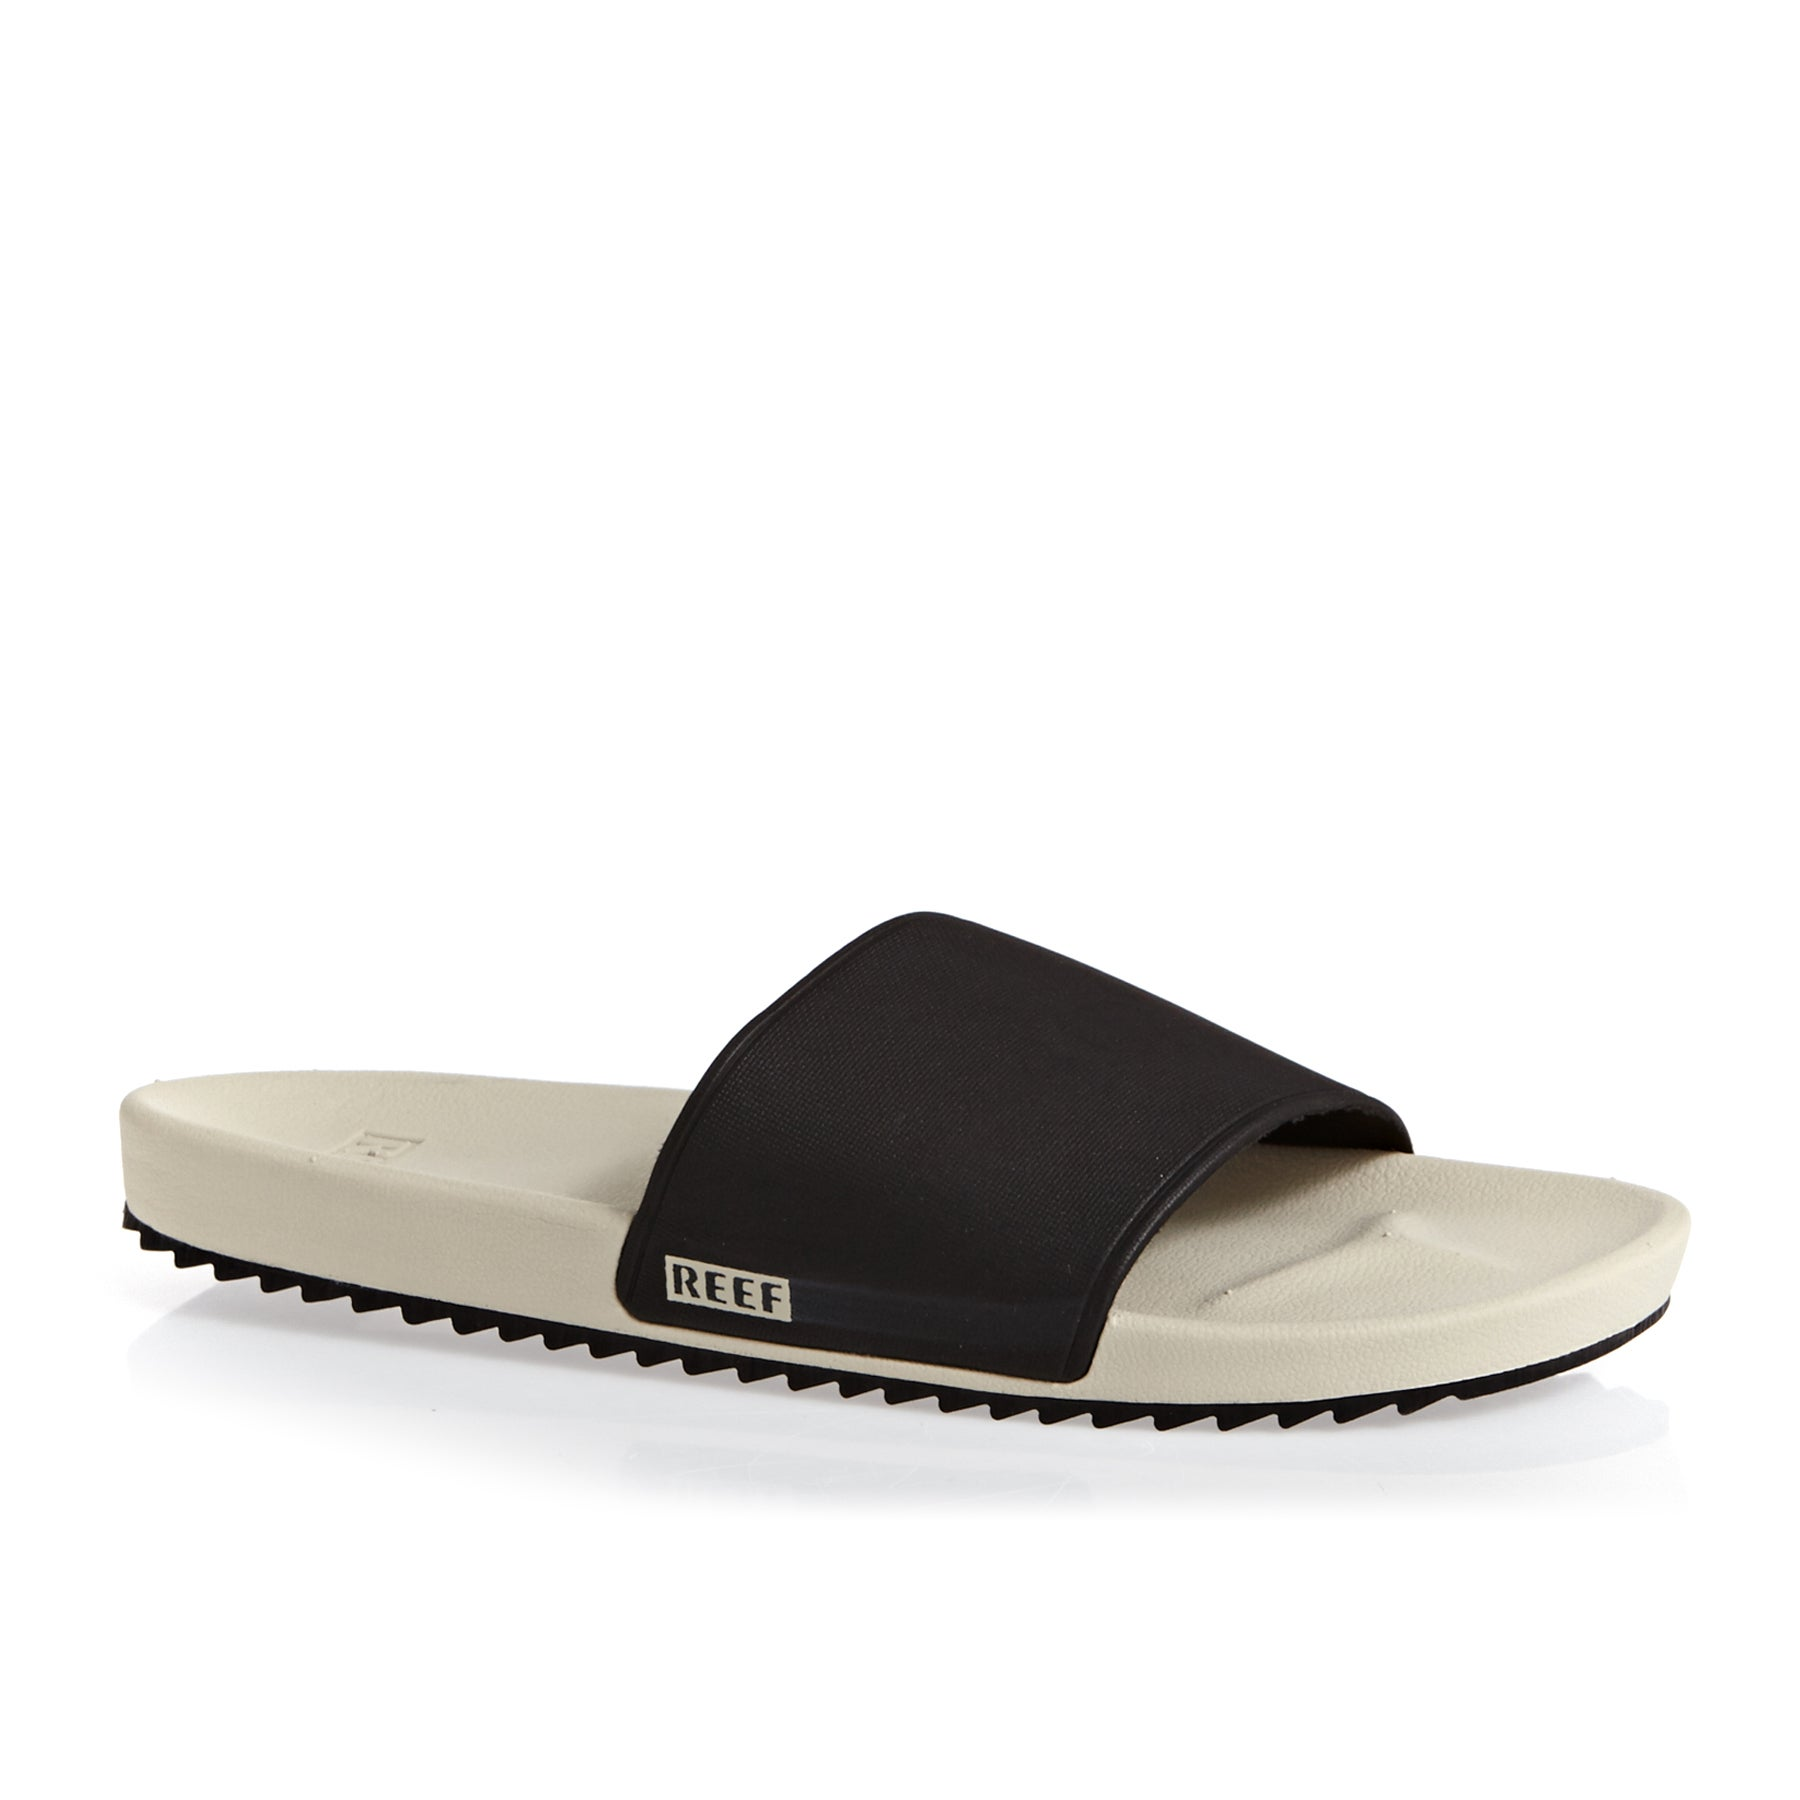 Reef Slidely Sandals - Oatmeal